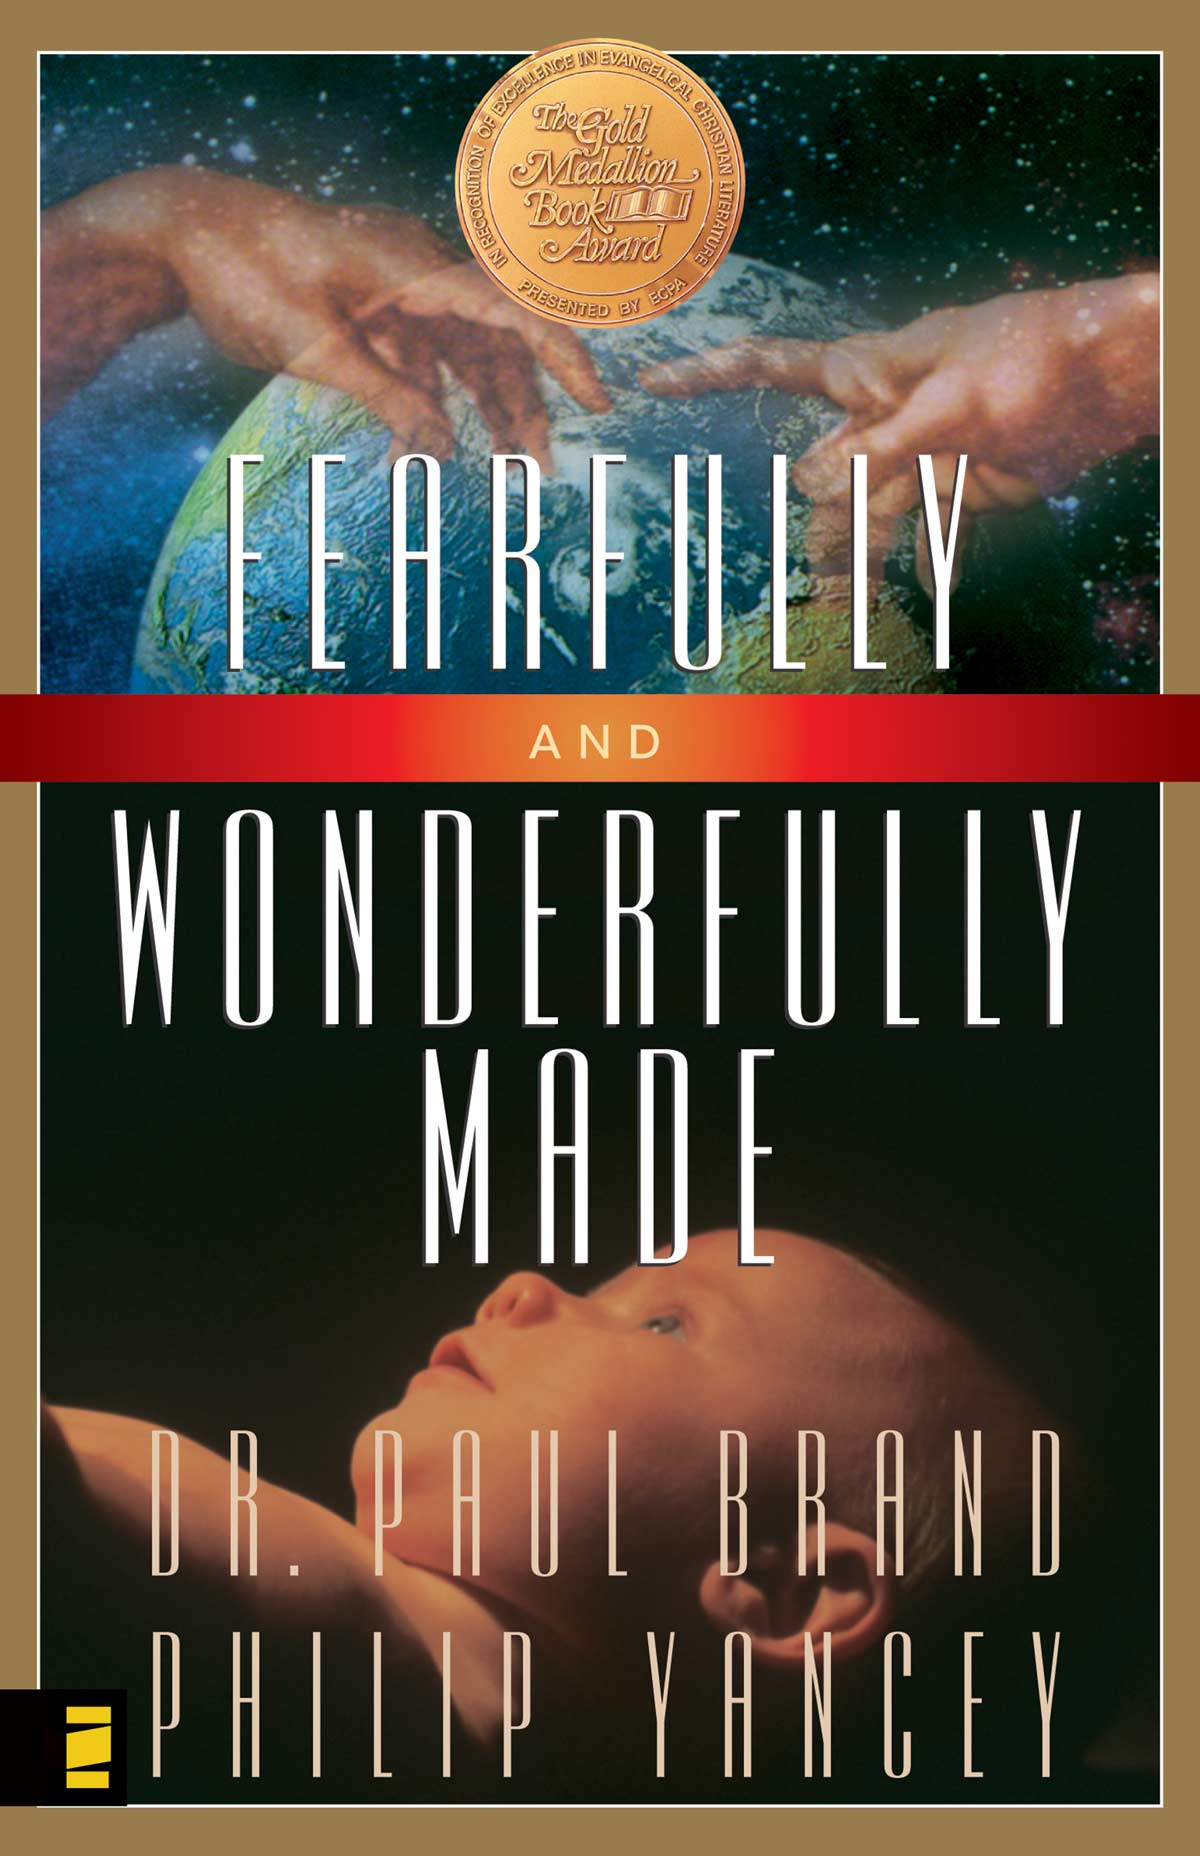 fearfully amp wonderfully made philip yancey